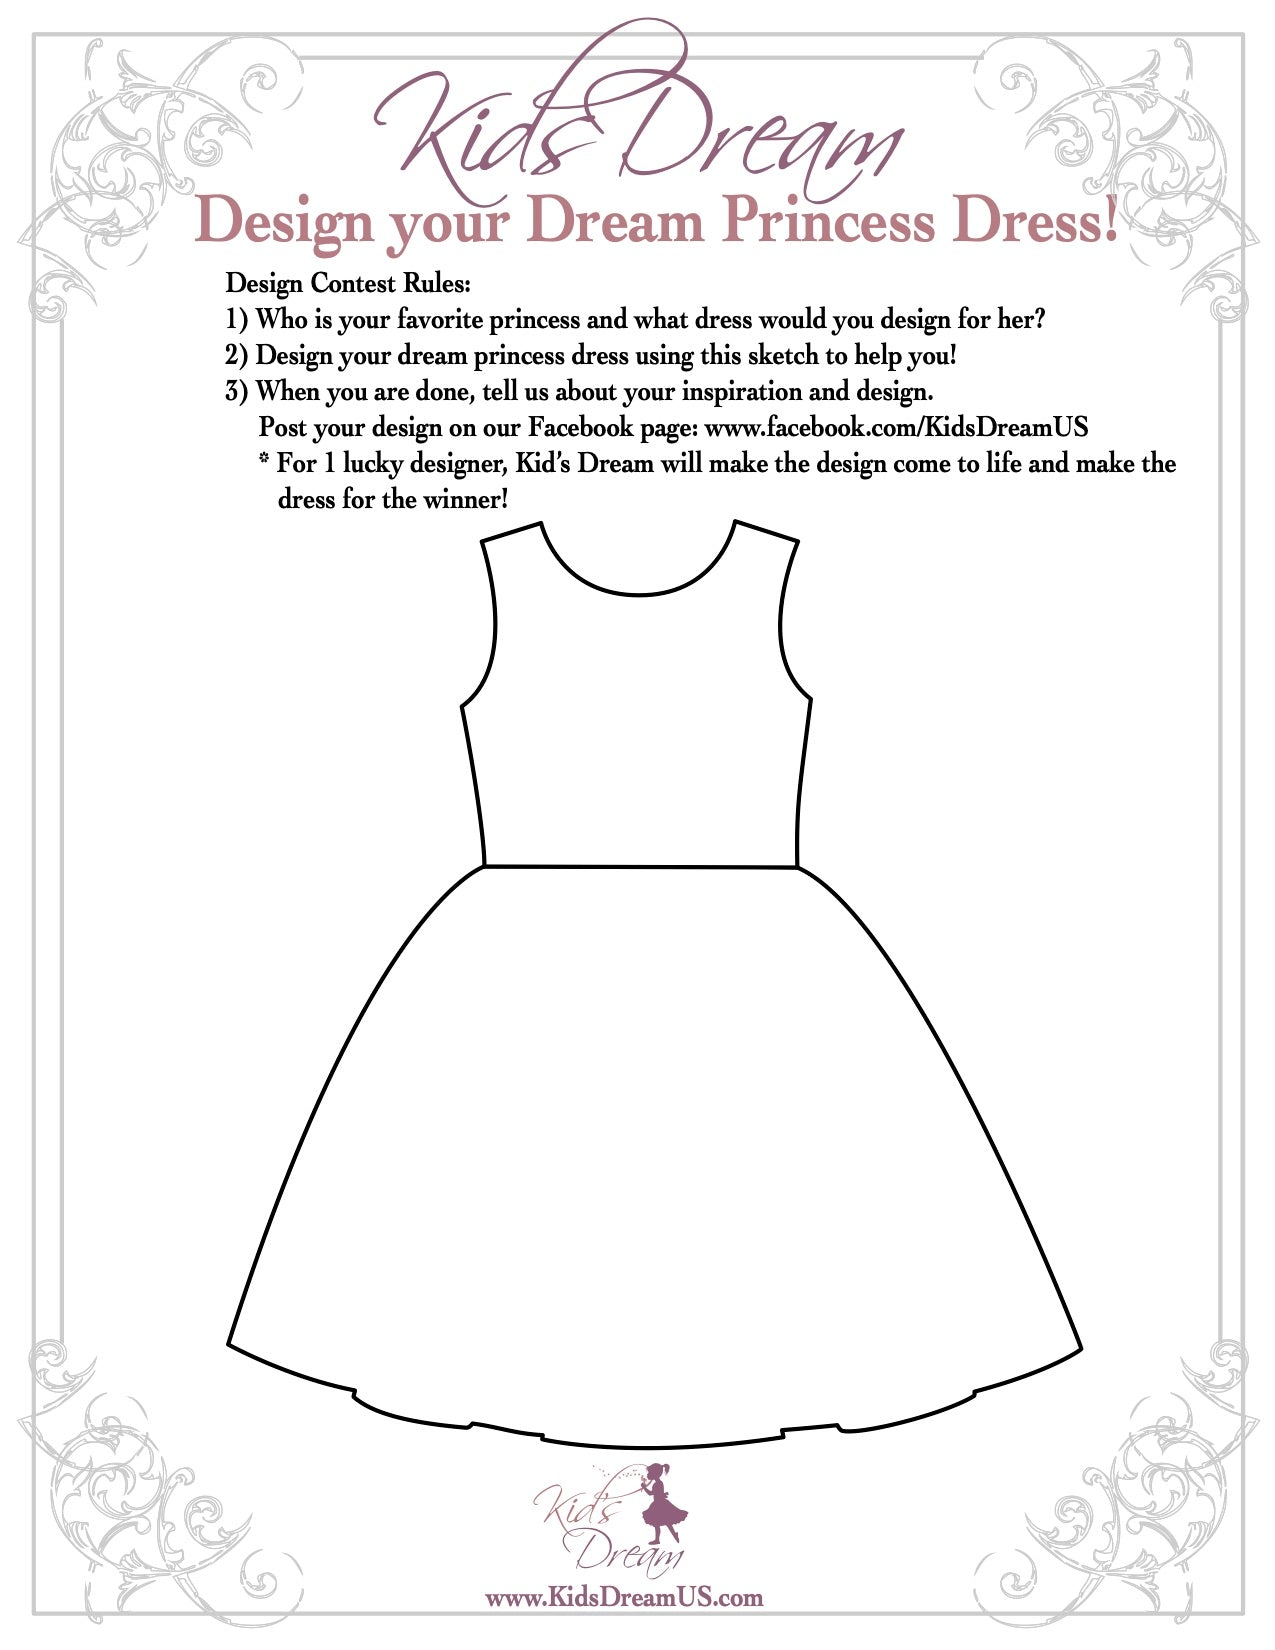 Kid's Dream Dress Design Contest 3/25-Extended to 4/30!